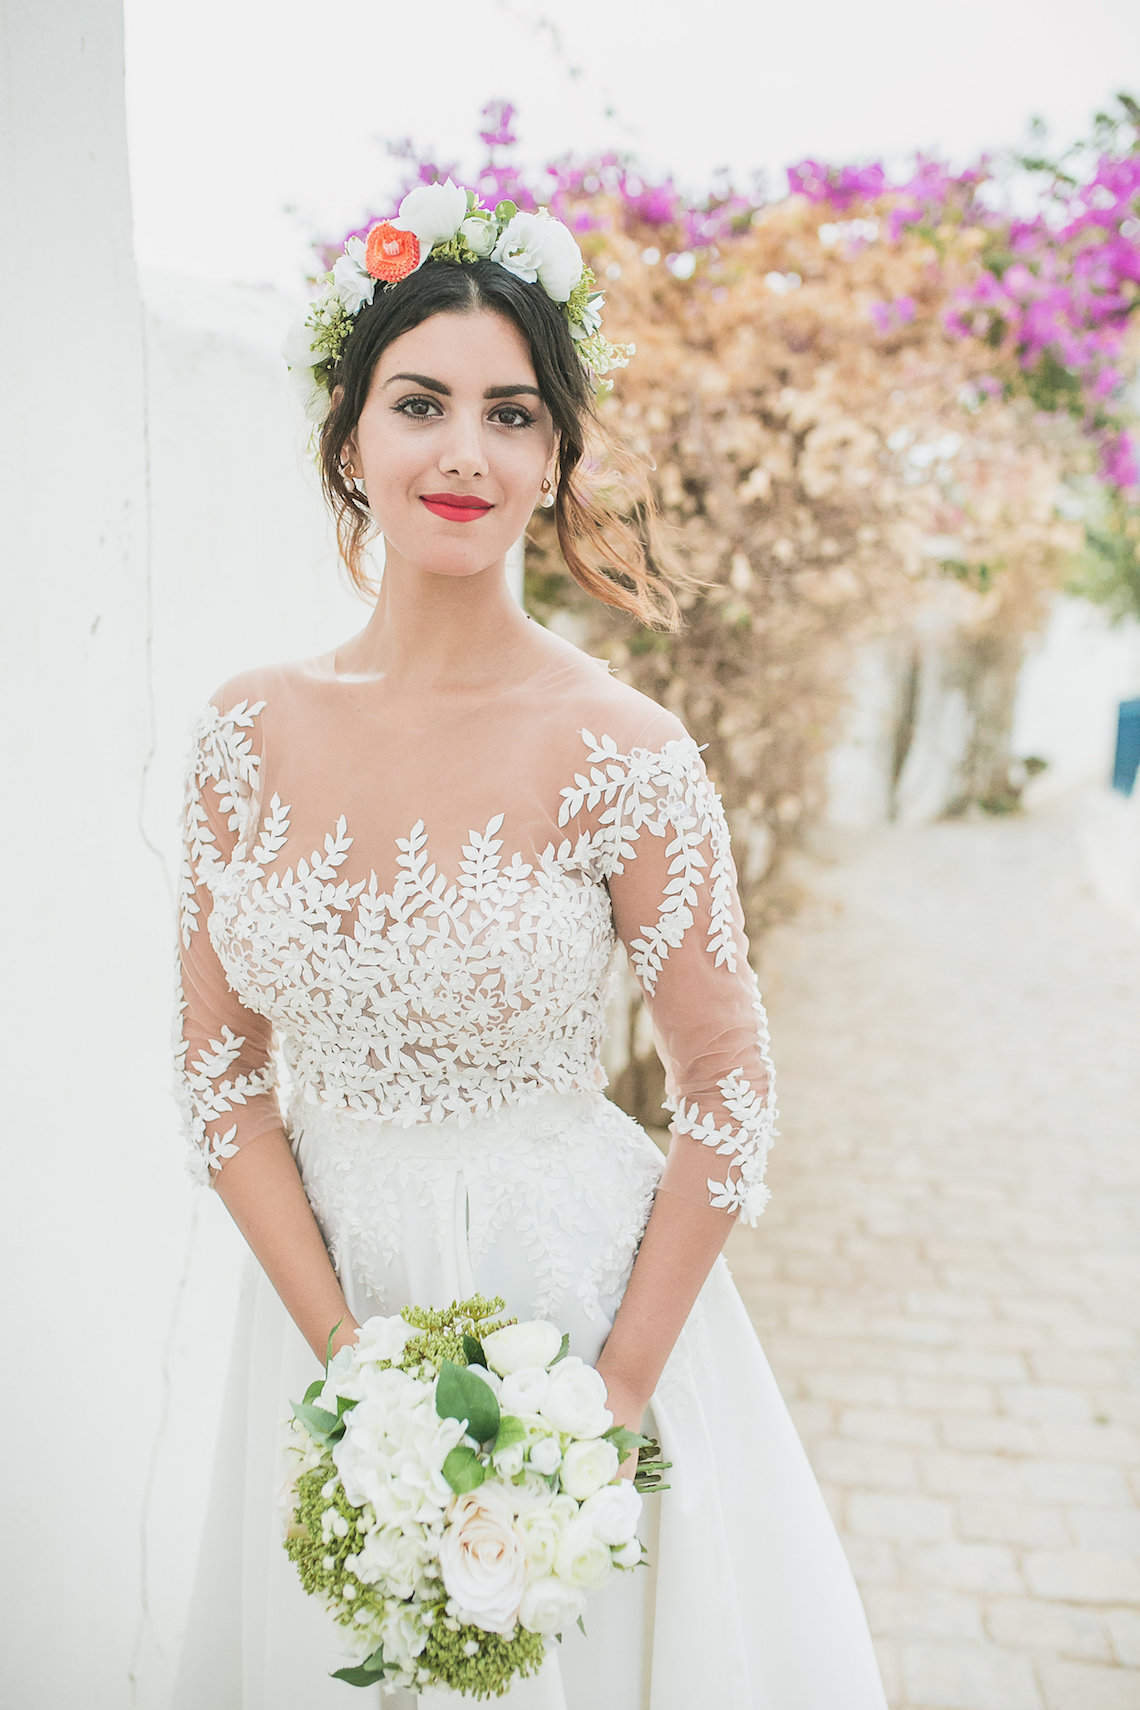 Mediterranean Meets Africa; Colorful Tunisian Wedding Inspiration | Ness Photography 42